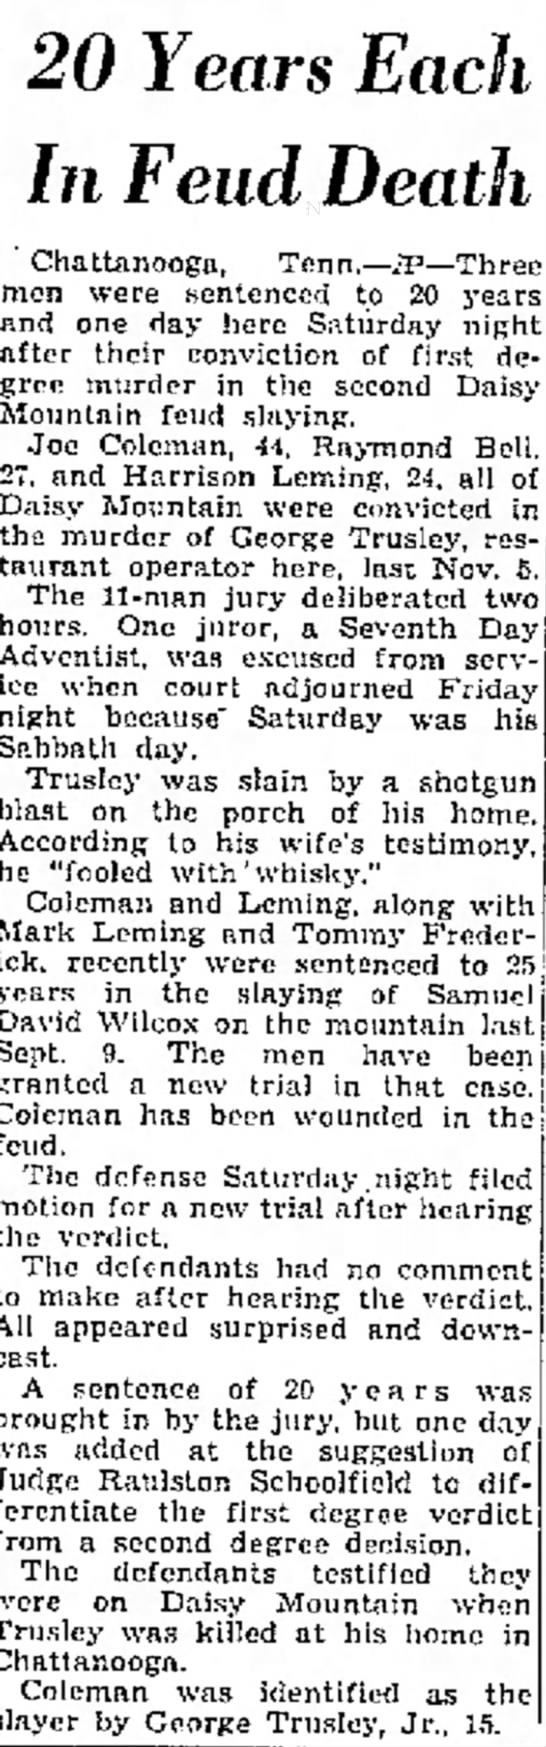 Daisy Feud - George Trusley case - Kingsport Times-News P1 6MAR49